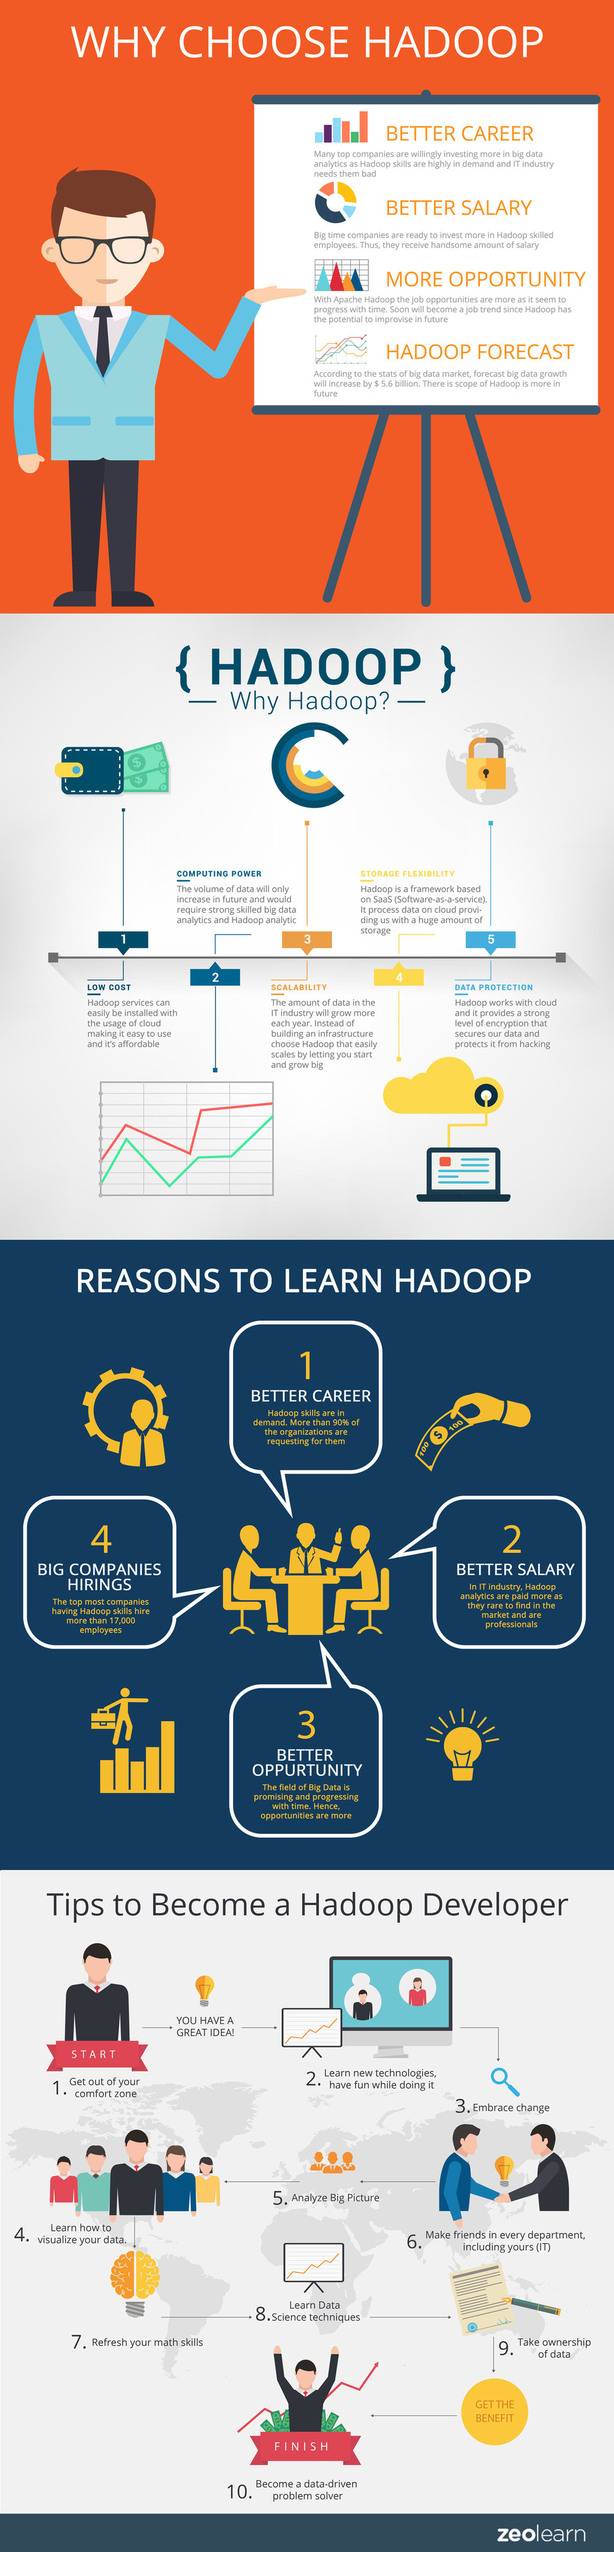 Big Data? Hadoop might be your thing